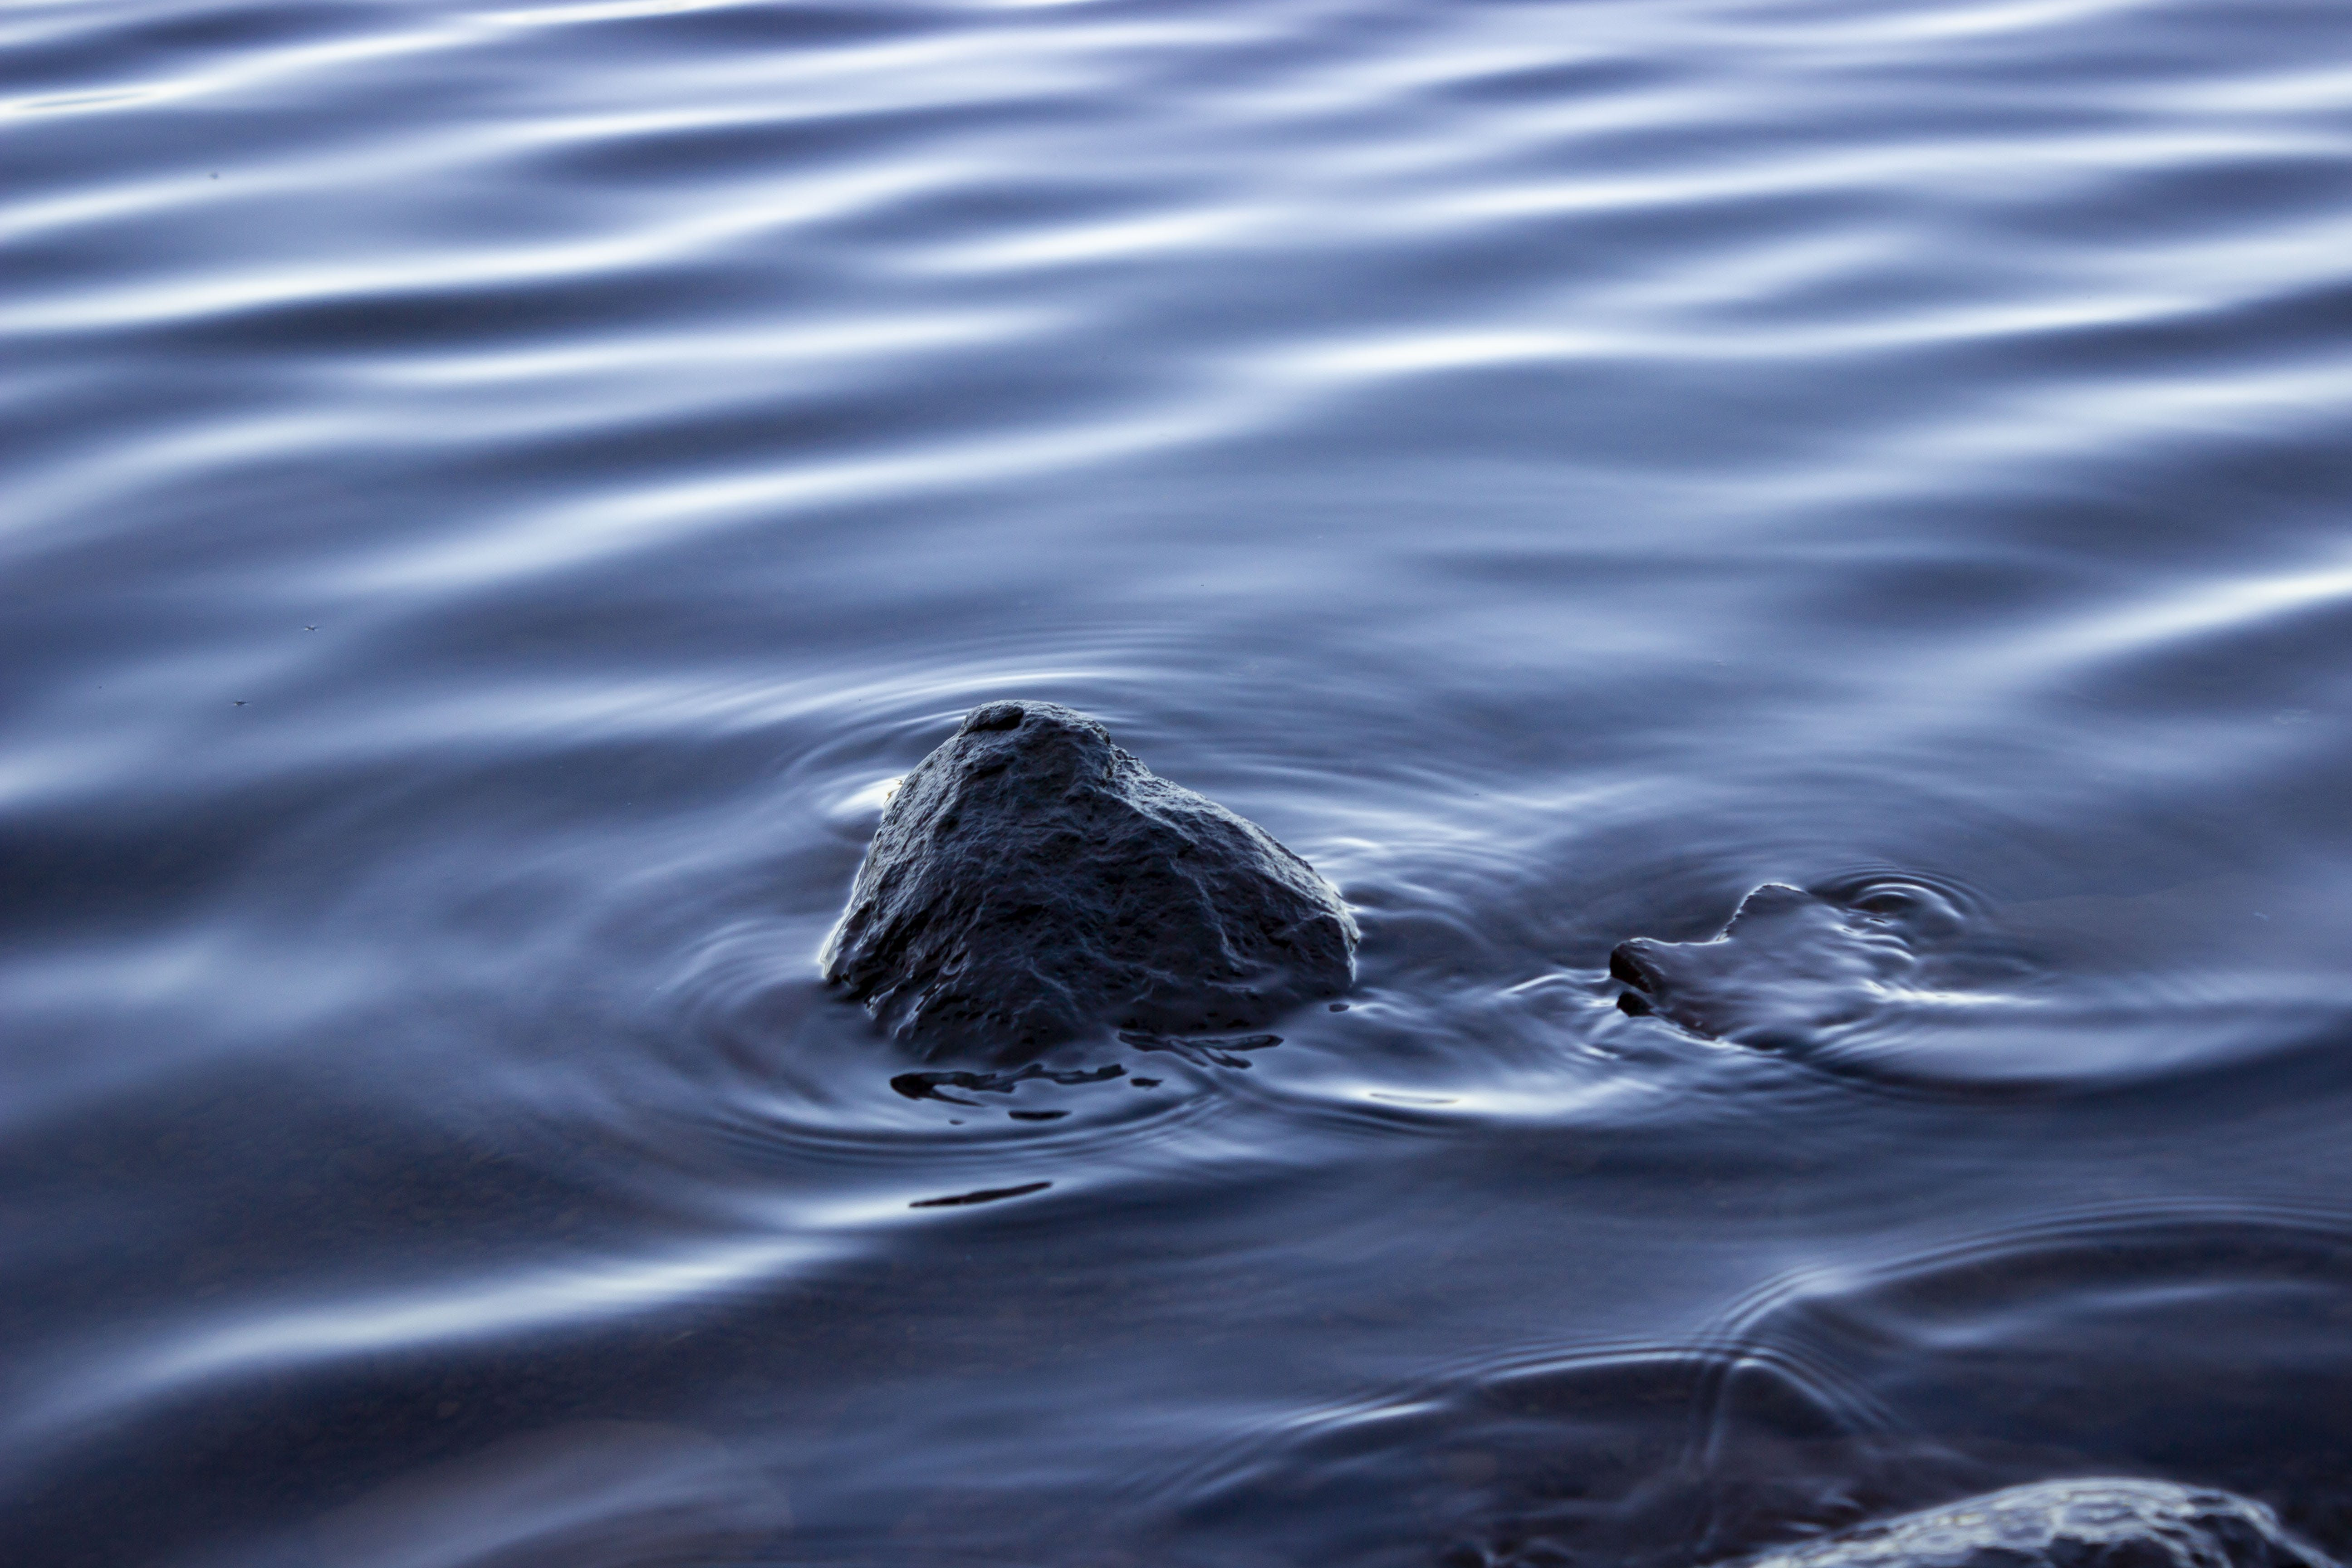 Free stock photo of rock, smooth, water